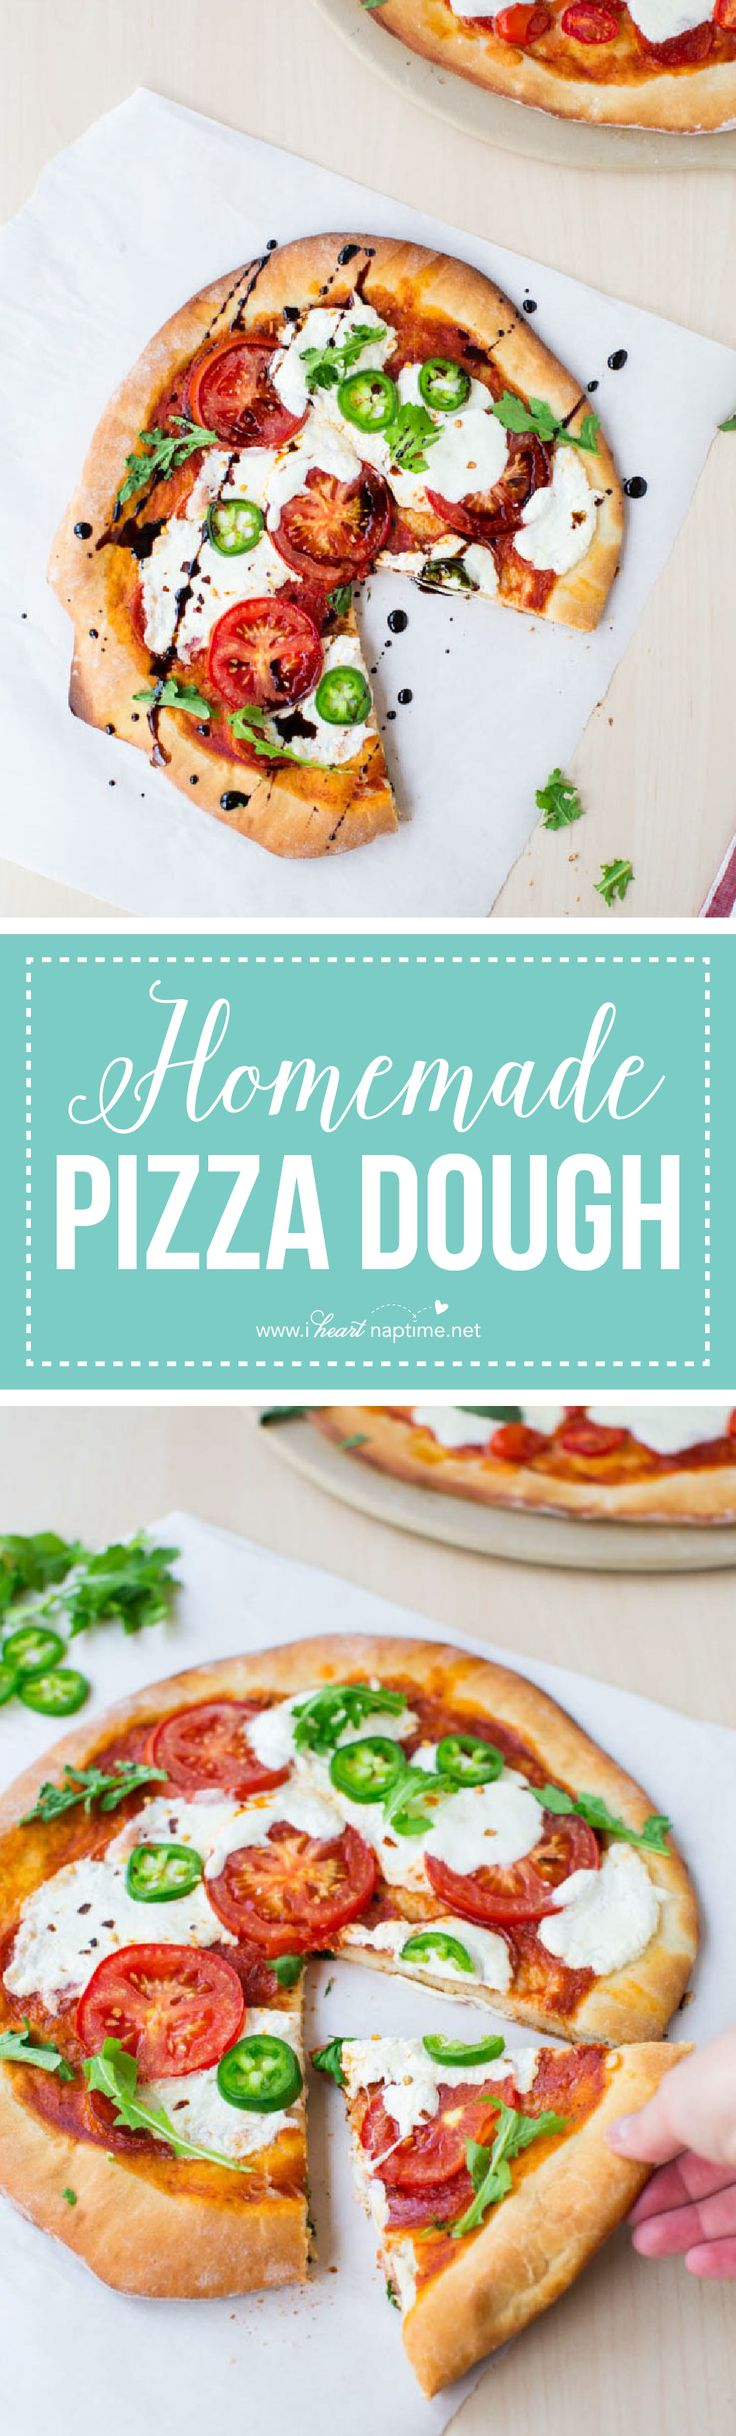 266 best Pizza Recipes images on Pinterest | Cooking recipes, Dinner ...